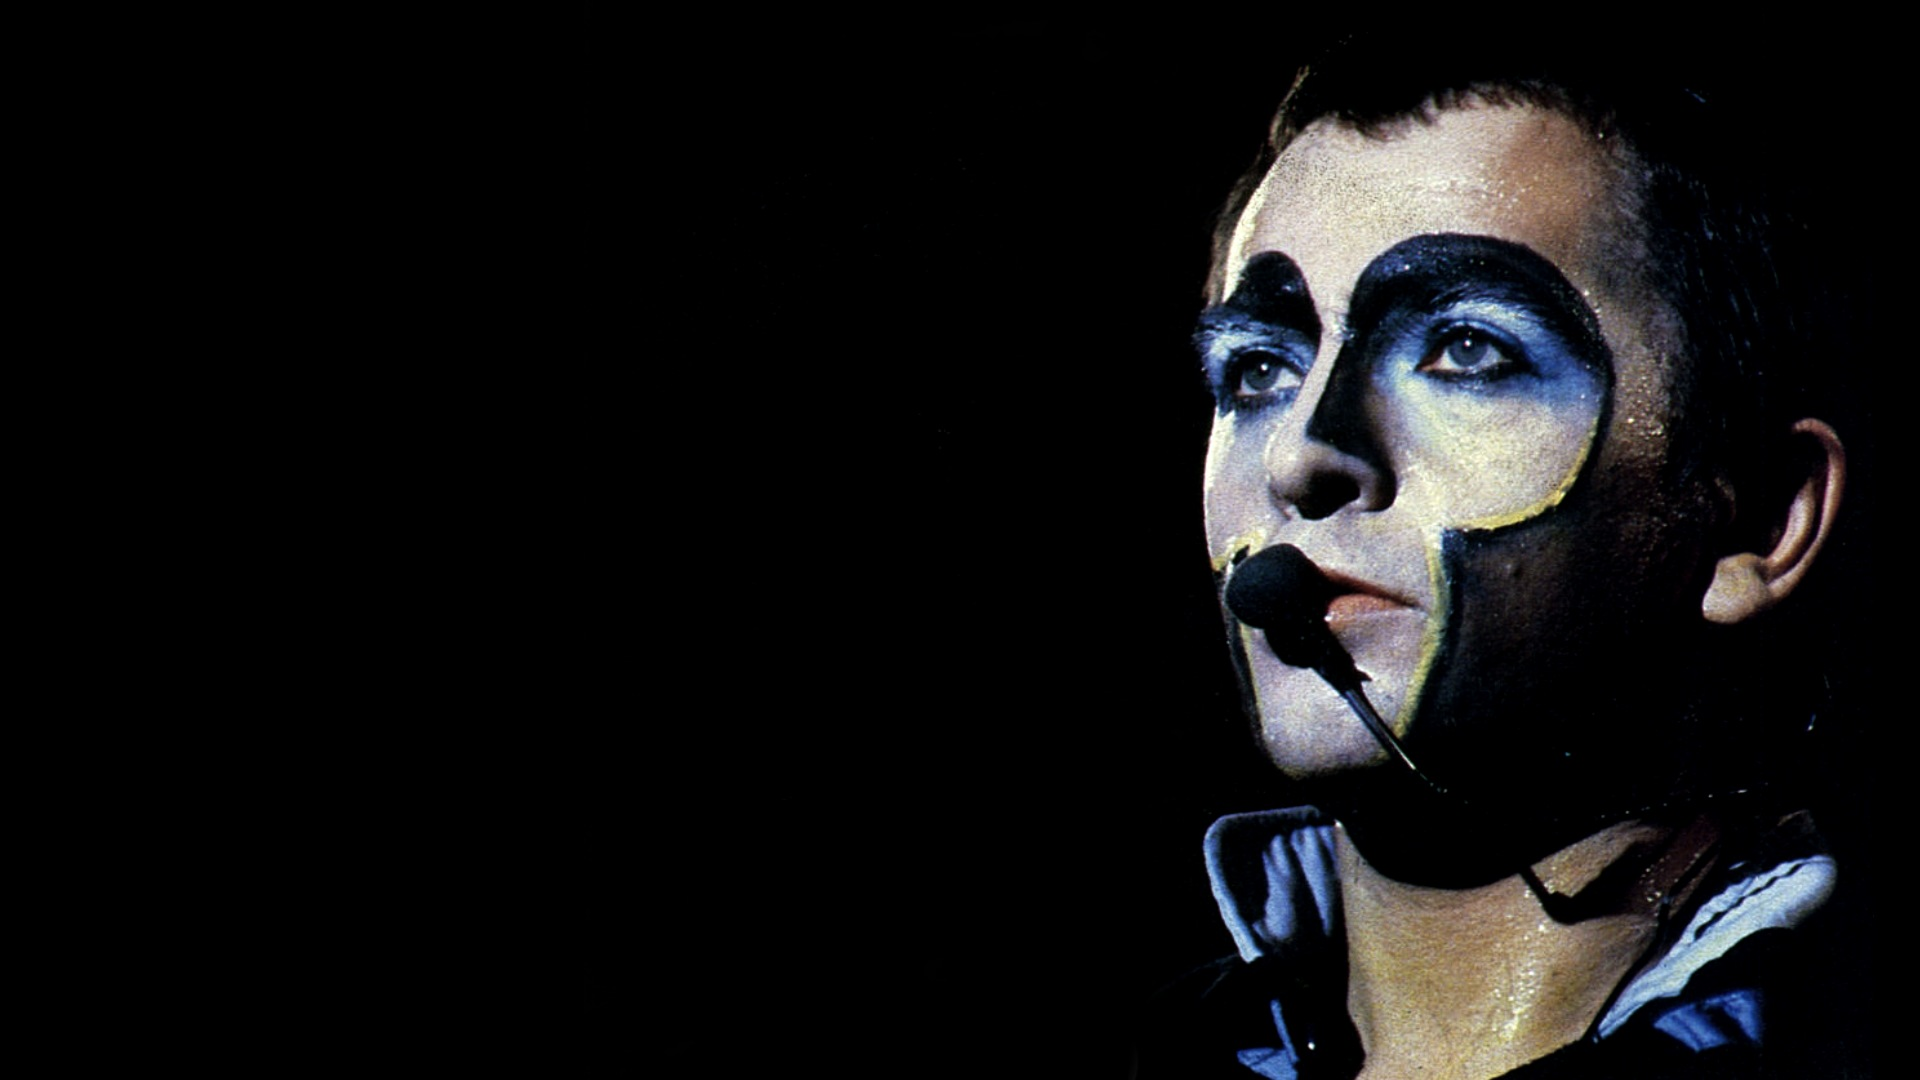 Peter Gabriel is an English singer-songwriter, musician and humanitarian activist who rose to fame as the original lead singer and flautist of the ...